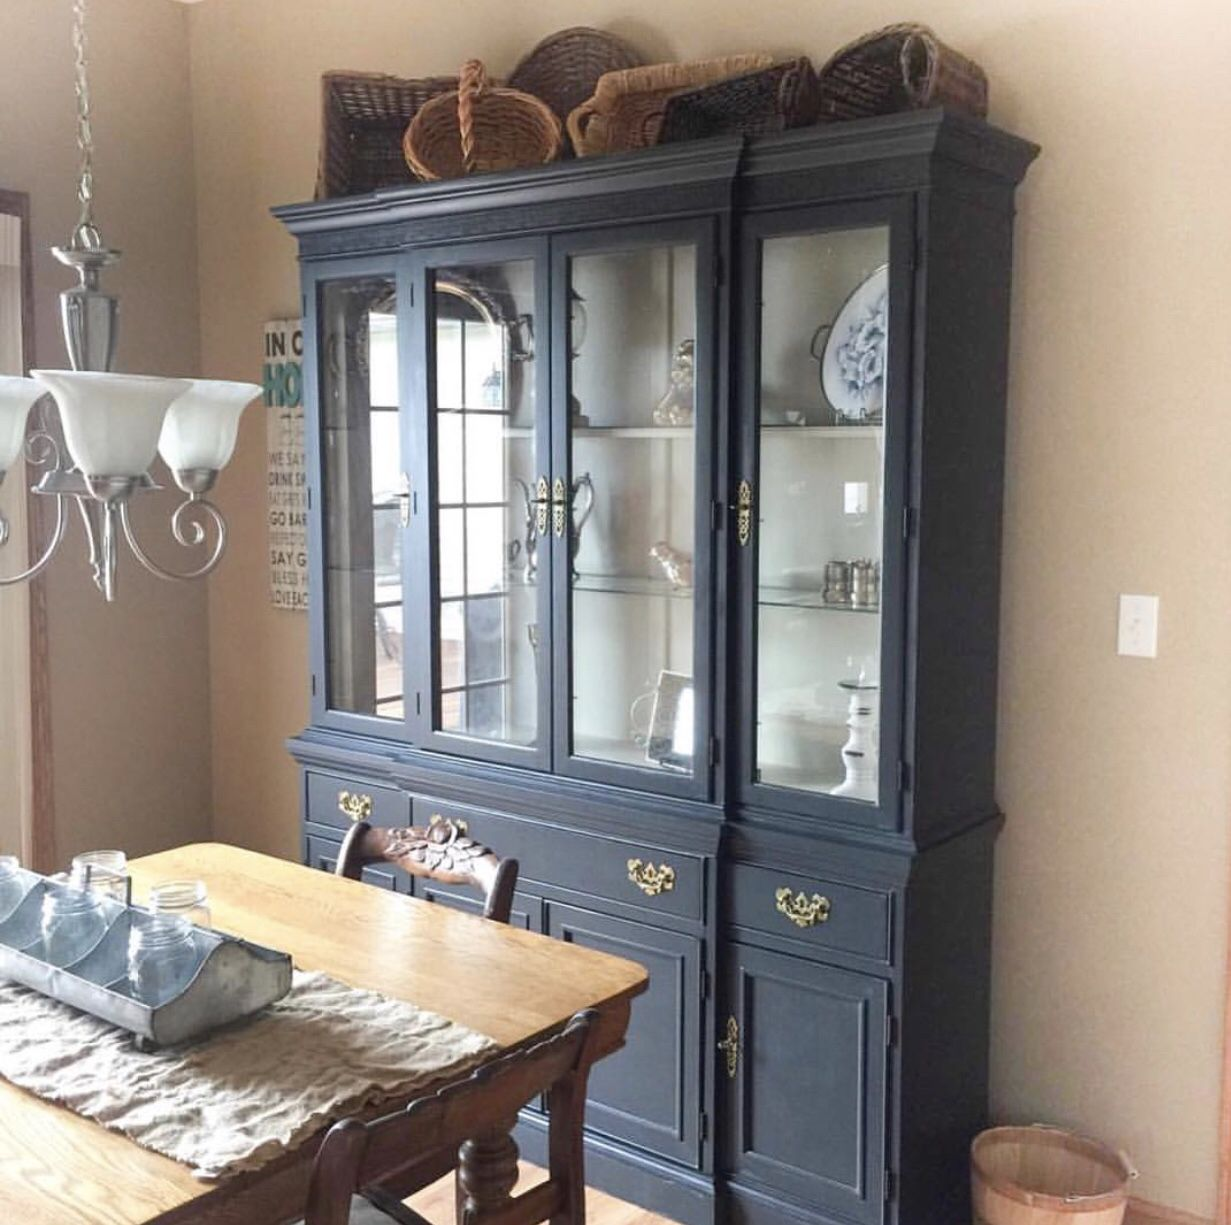 China Cabinet Gets An Update With Annie Sloan Chalk Paint In Graphite Annie Sloan Painted Furniture Vintage China Cabinets Painted China Cabinets